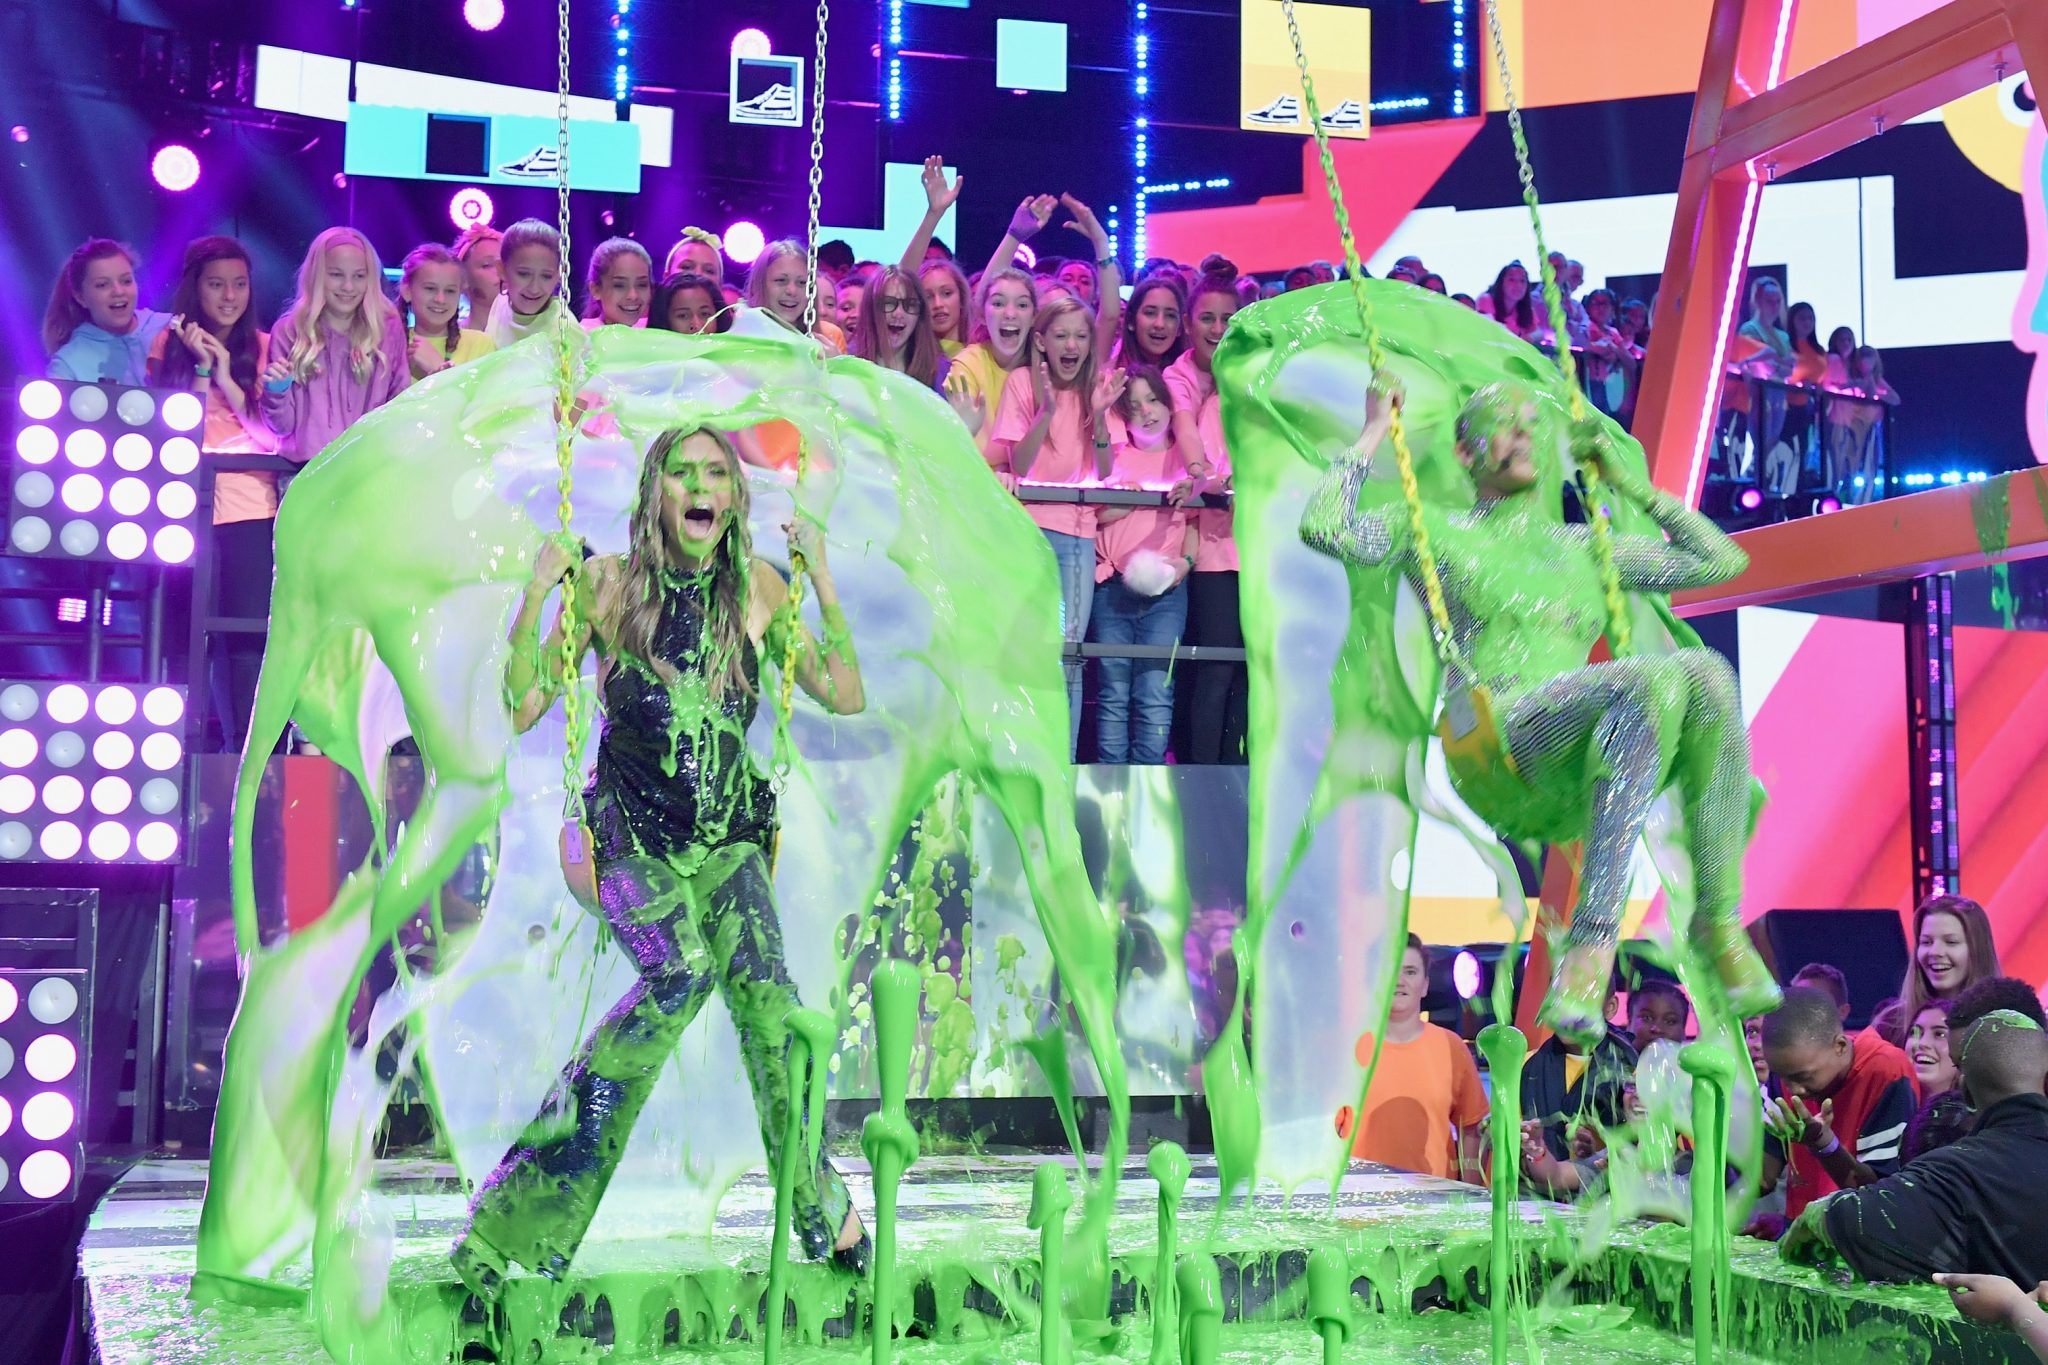 Dwayne Johnson, Demi Lovato, Ed Sheeran, Camila Cabello, Zendaya, Millie Bobby Brown, Fifth Harmony, Stranger Things, Coco și mulți alții câștigă la Nickelodeon's 2018 Kids' Choice Awards